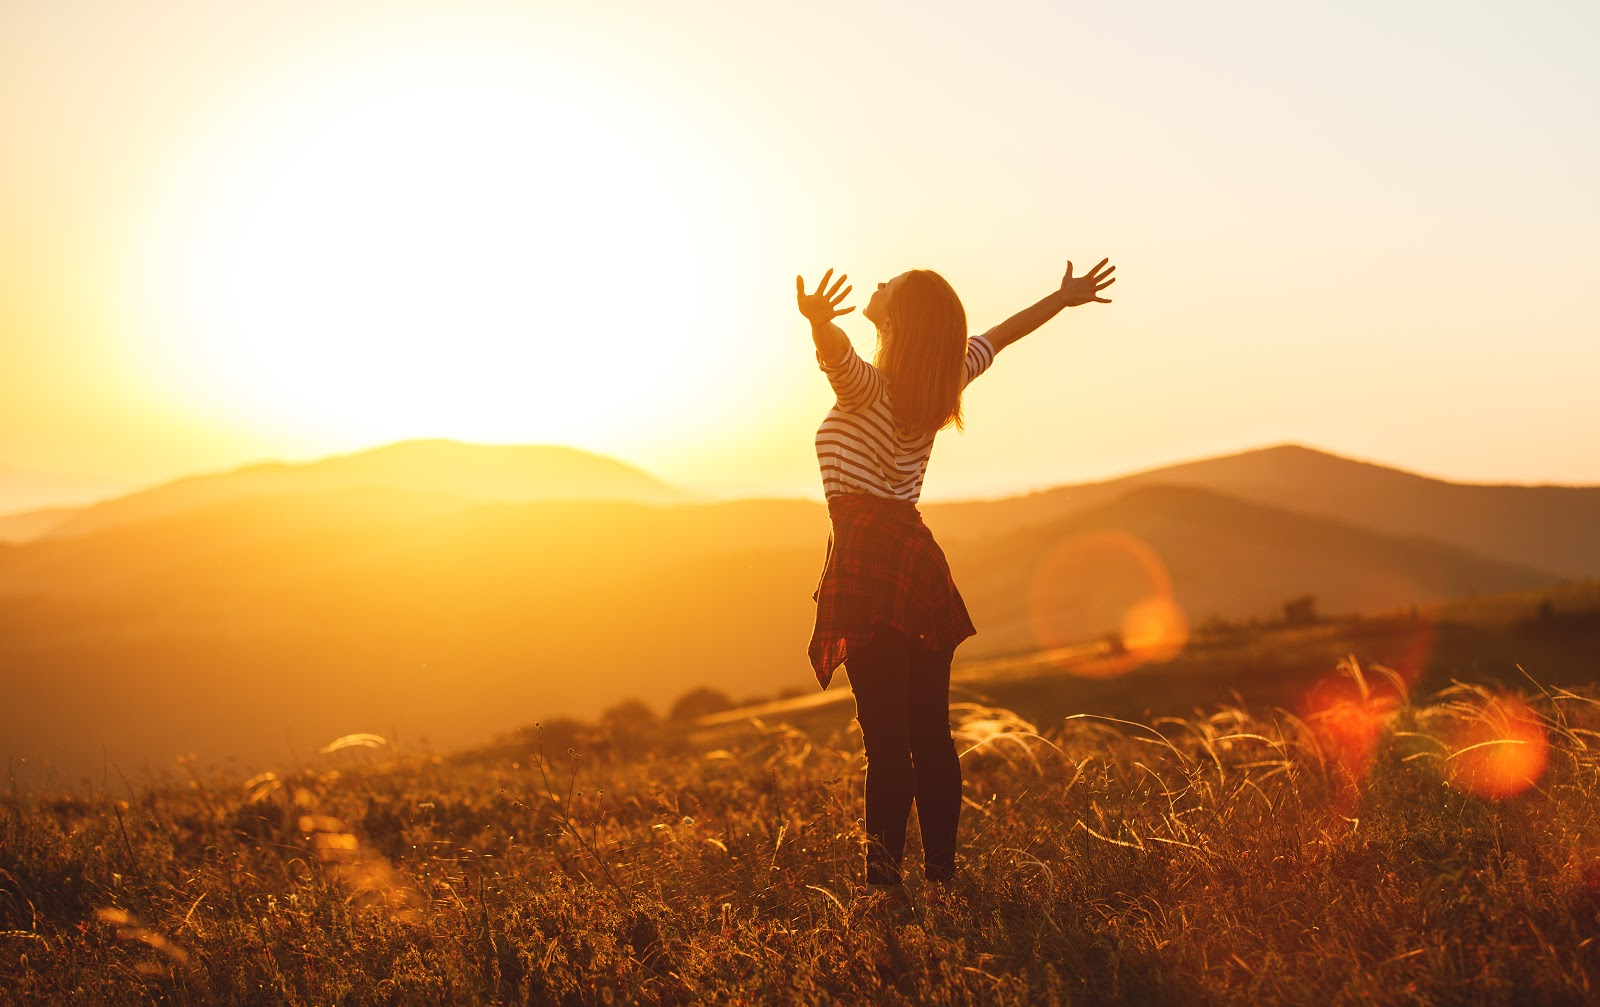 A woman raises her arms in the air while looking at a sunset